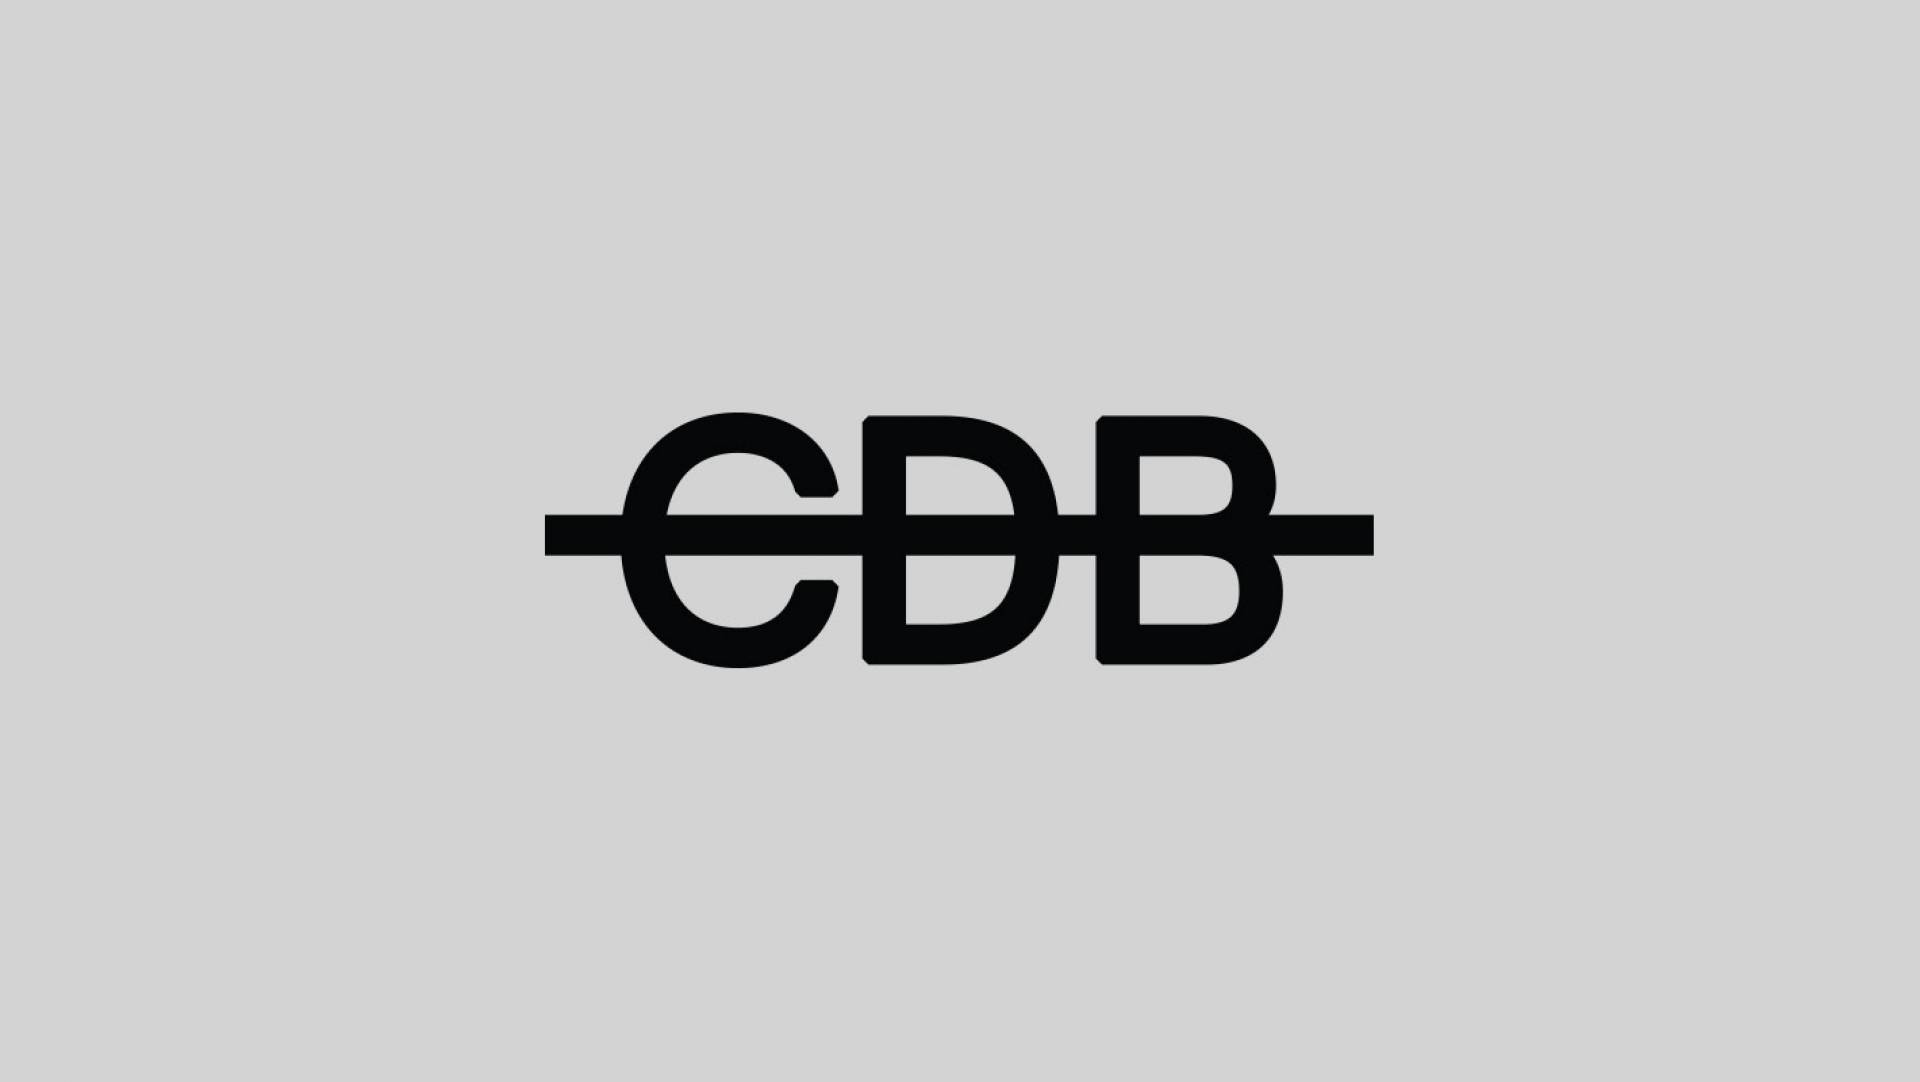 Logo Design melbourne-CDB Music Artwork